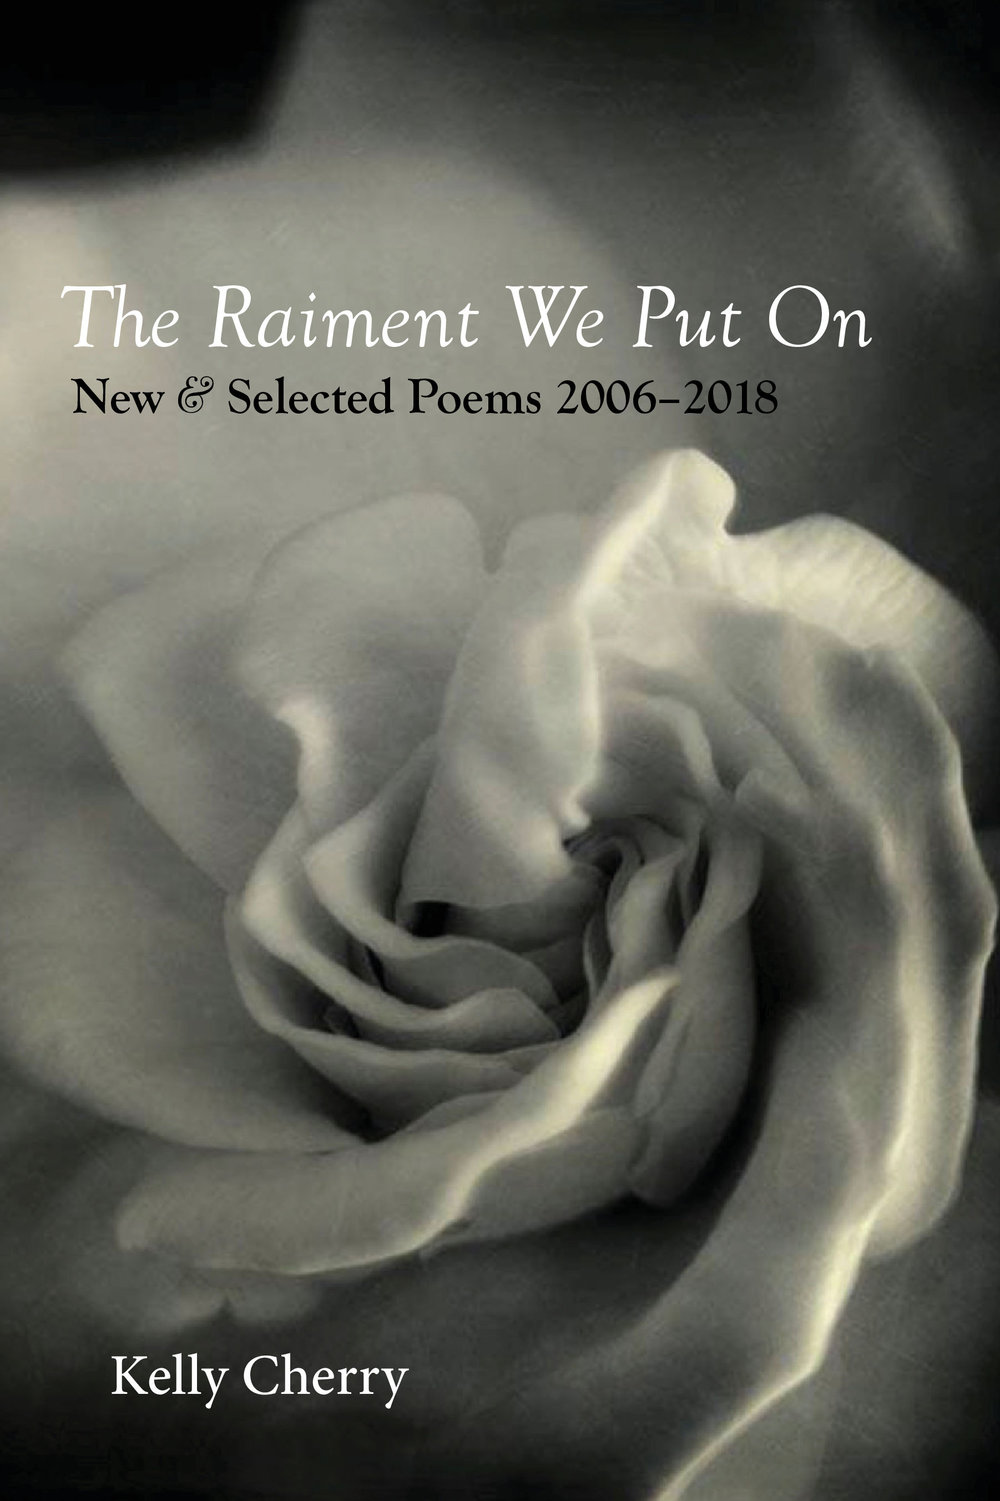 The Raiment We Put On: New & Selected Poems, 2006–2018 by Kelly Cherry